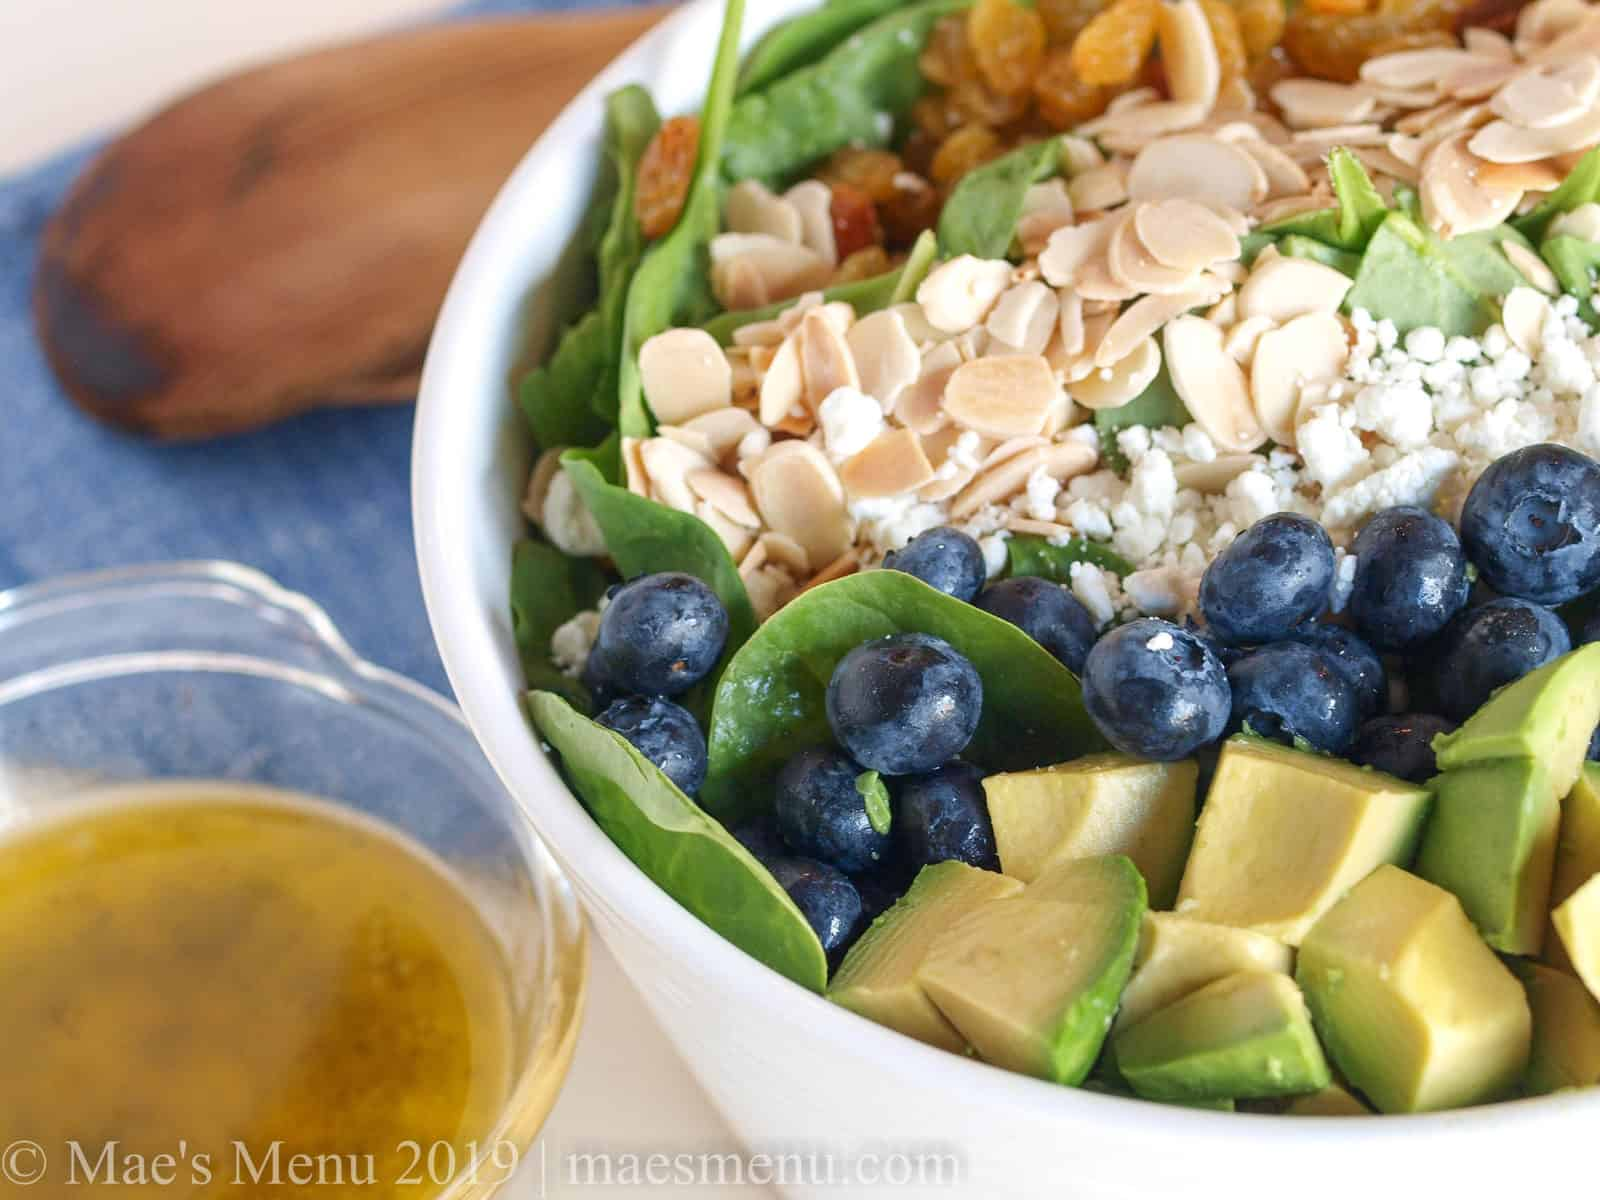 Large white bowl of Blueberry Avocado Spinach Salad.